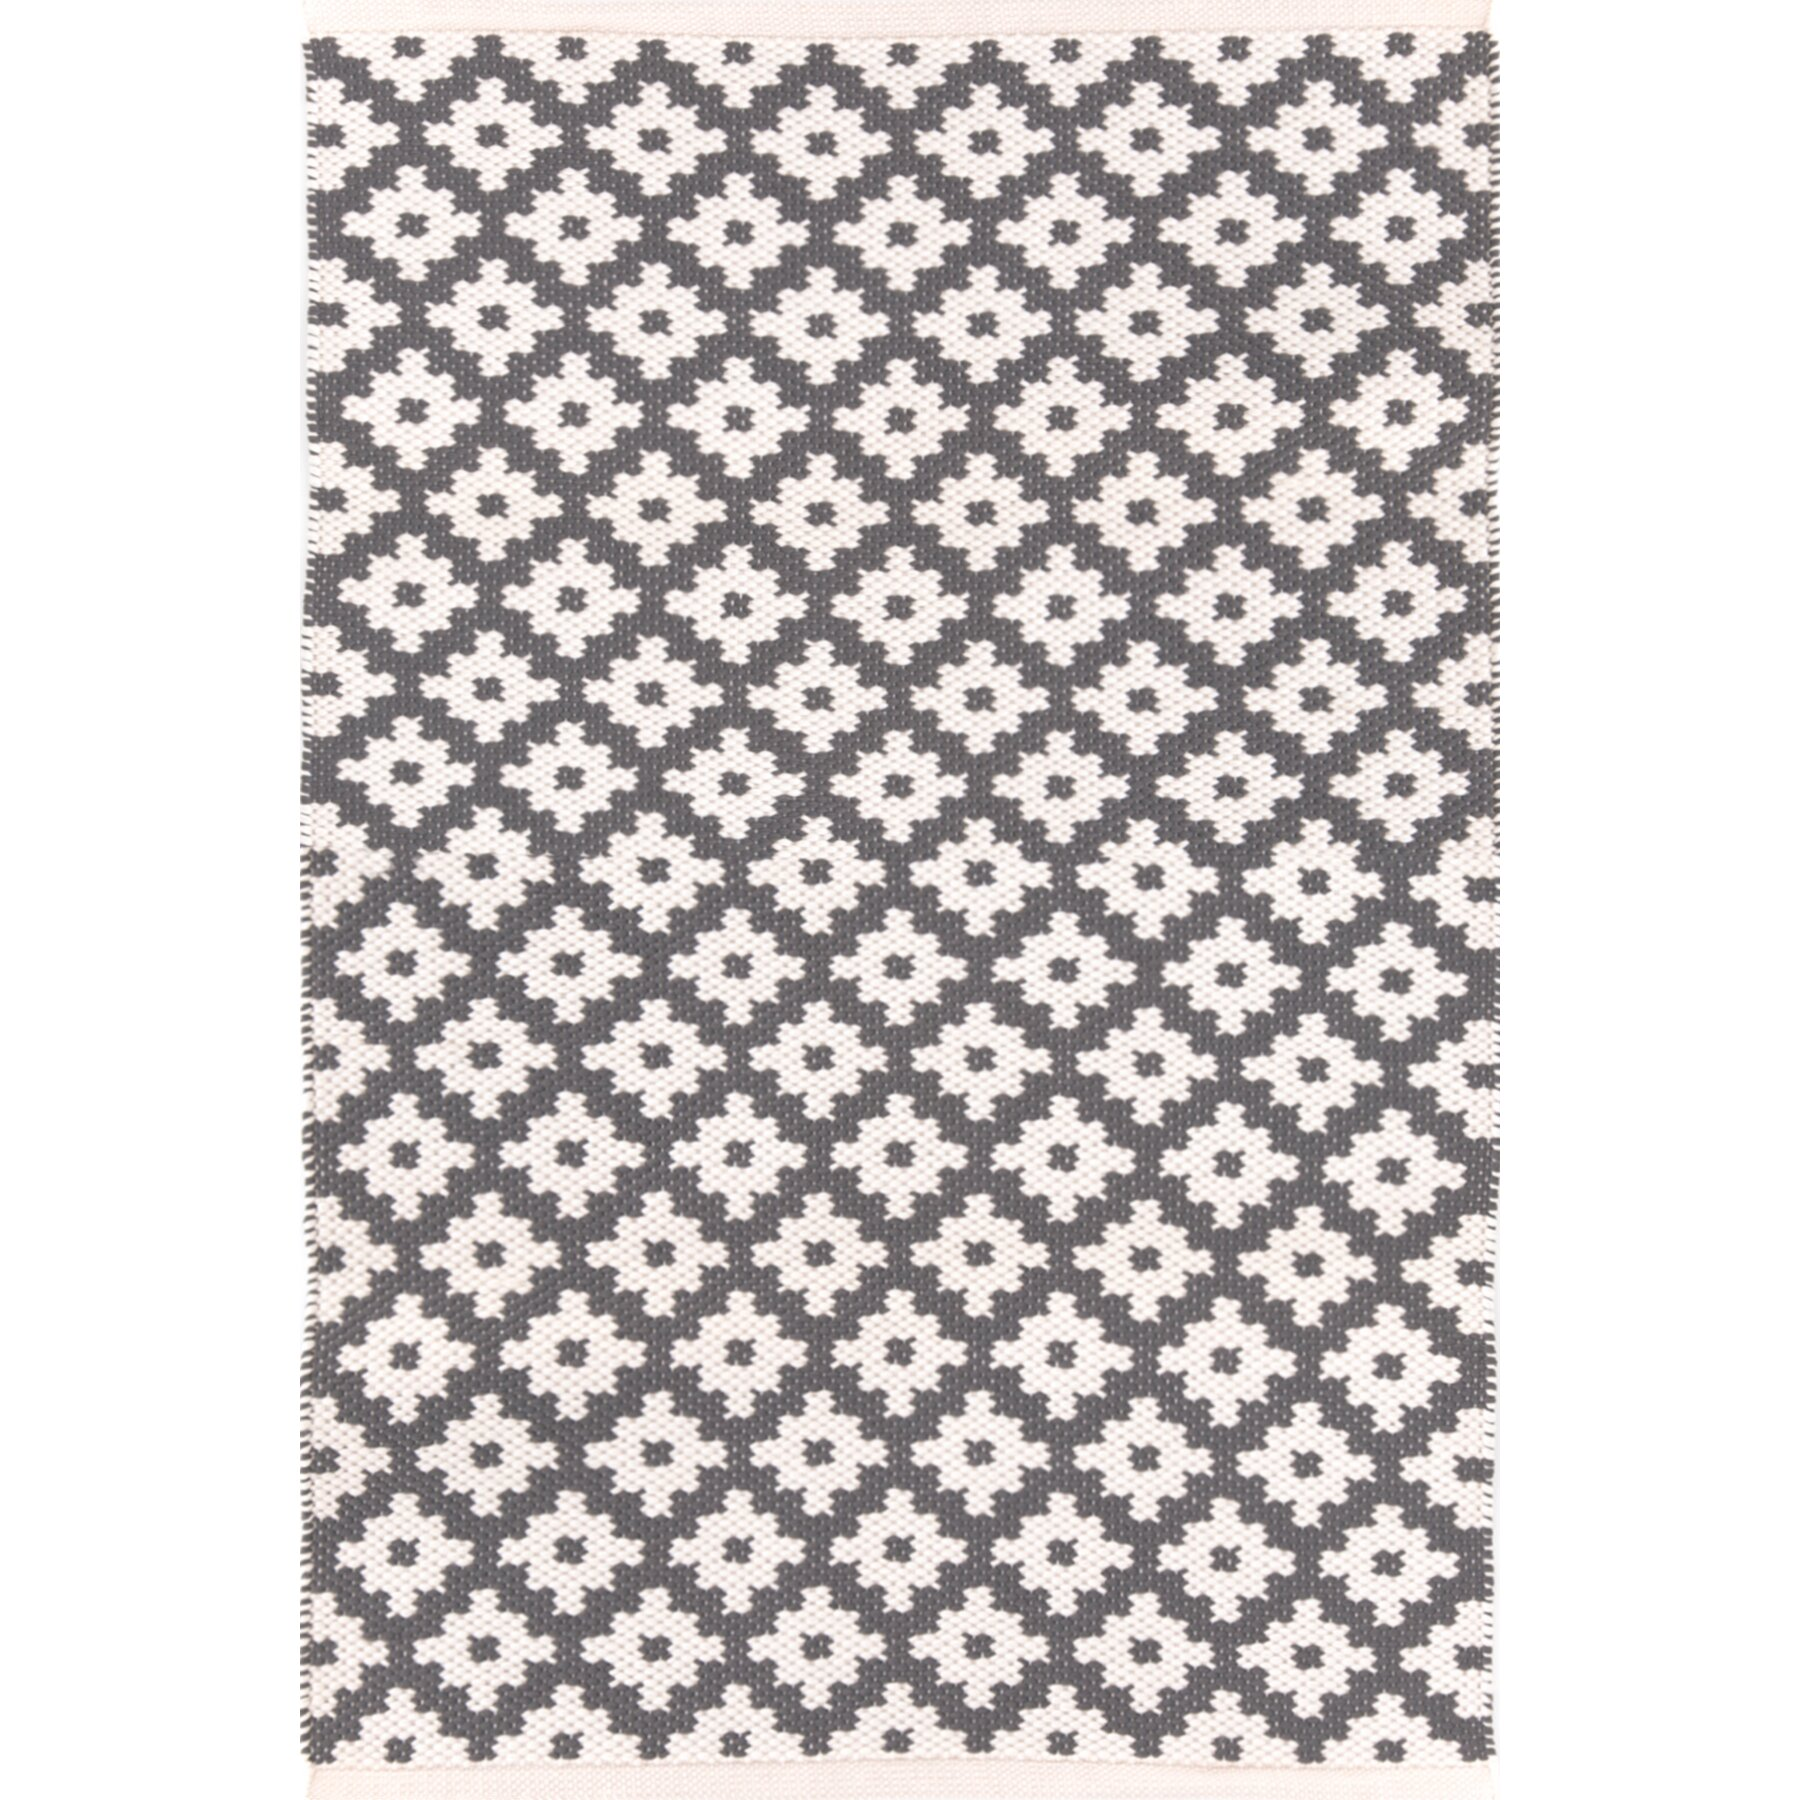 Dash and albert rugs samode hand woven grey indoor outdoor for Dash and albert indoor outdoor rugs